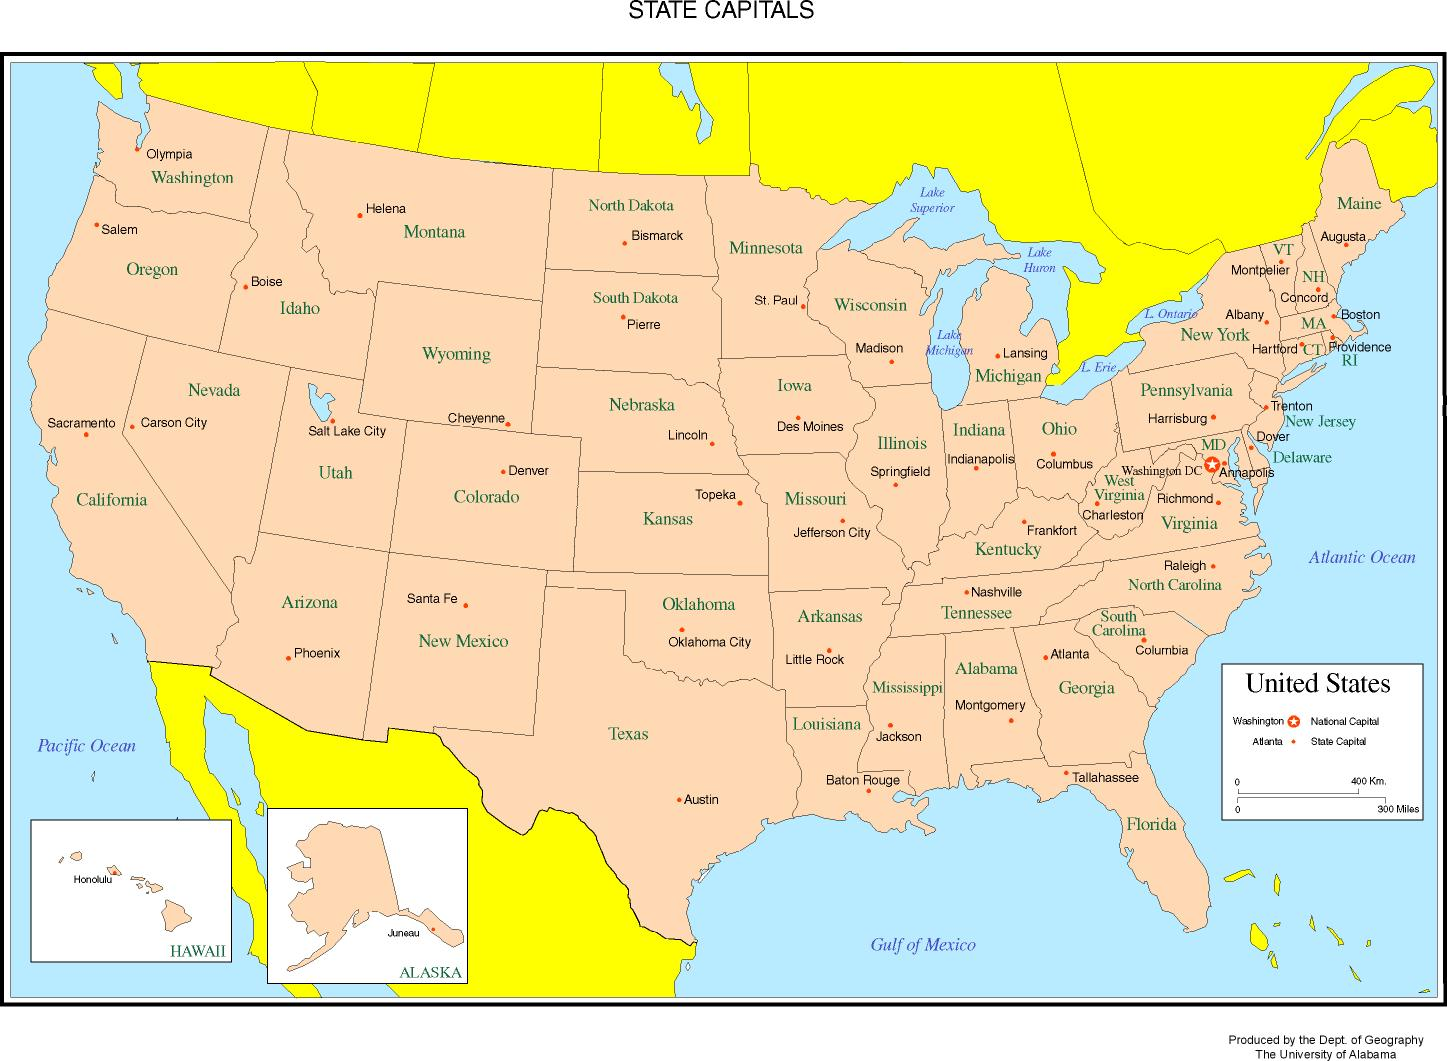 map of the fifty states of the united states